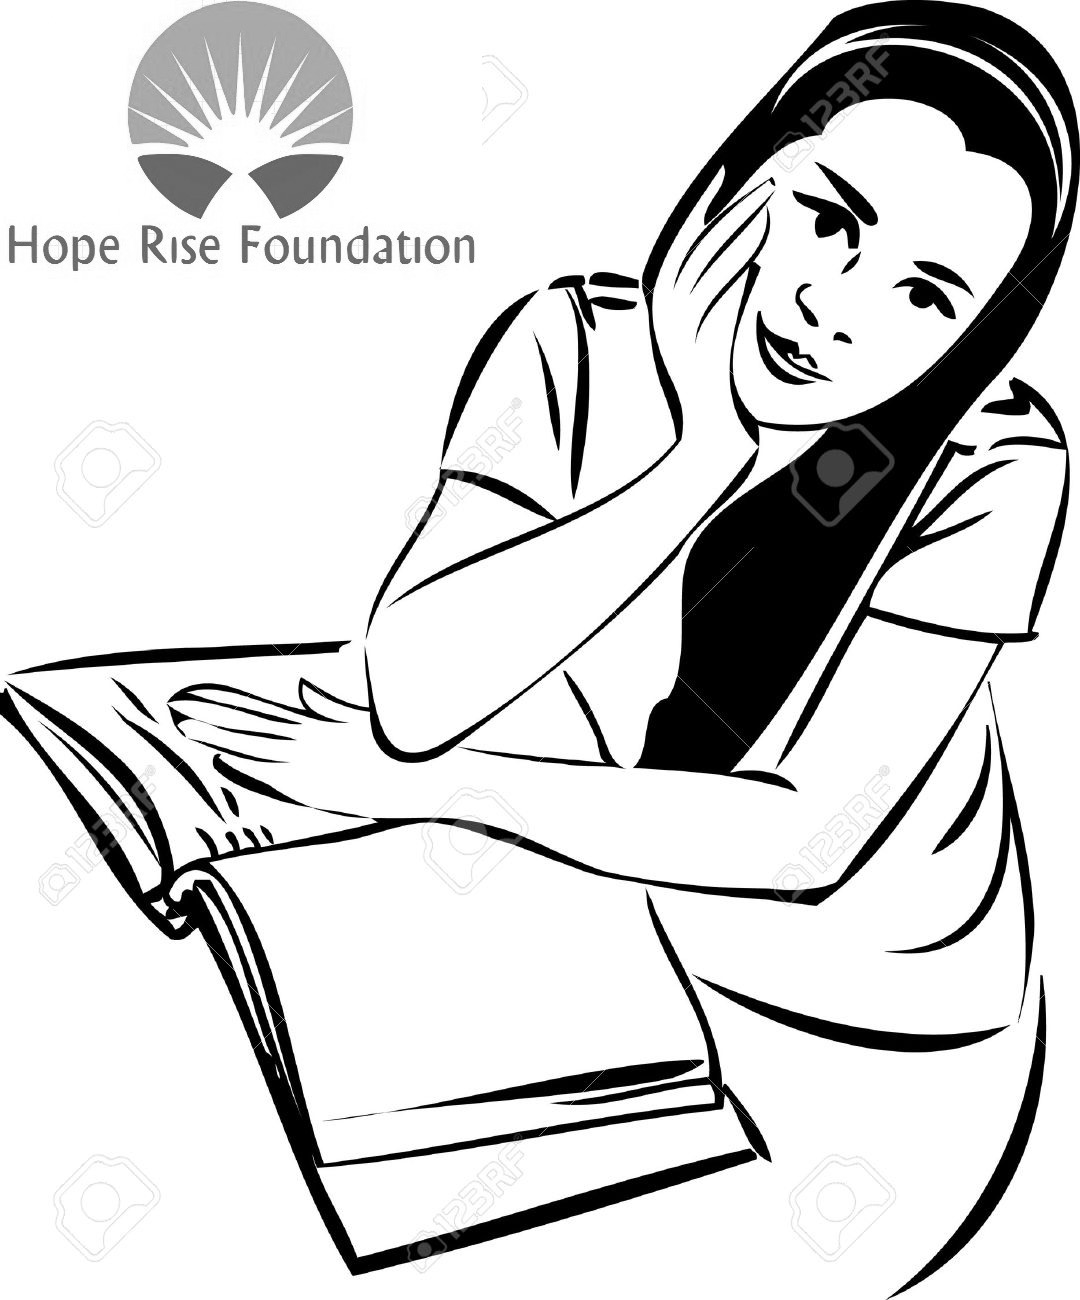 1080x1300 Hope Rise Foundation Empowering Women By Education